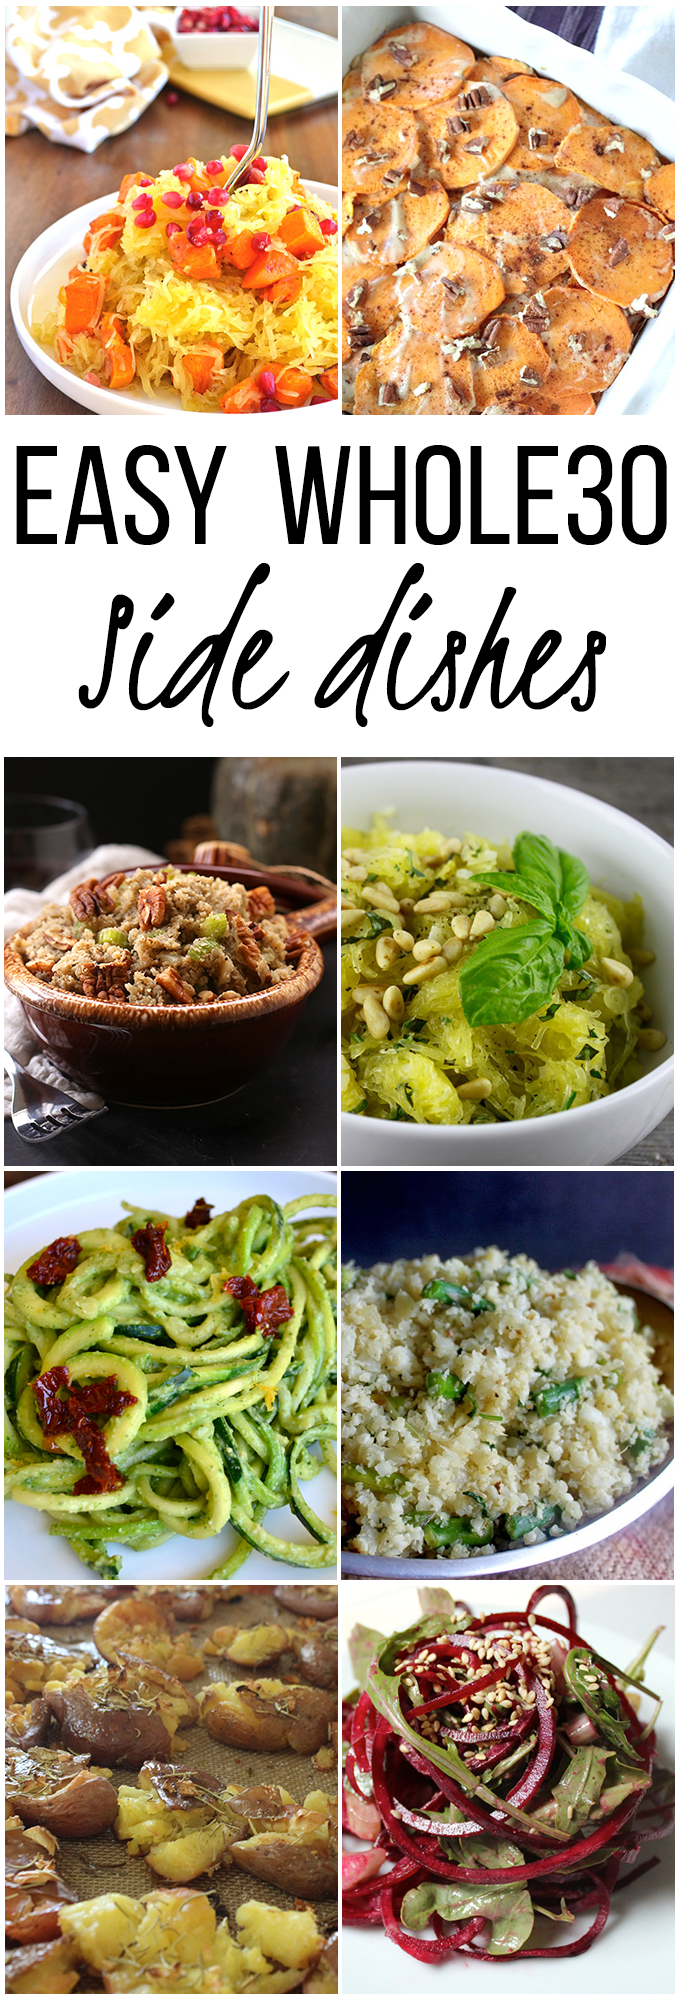 Easy Whole30/Paleo Side Dishes for any occasion! Gluten Free, Grain Free, Dairy Free!